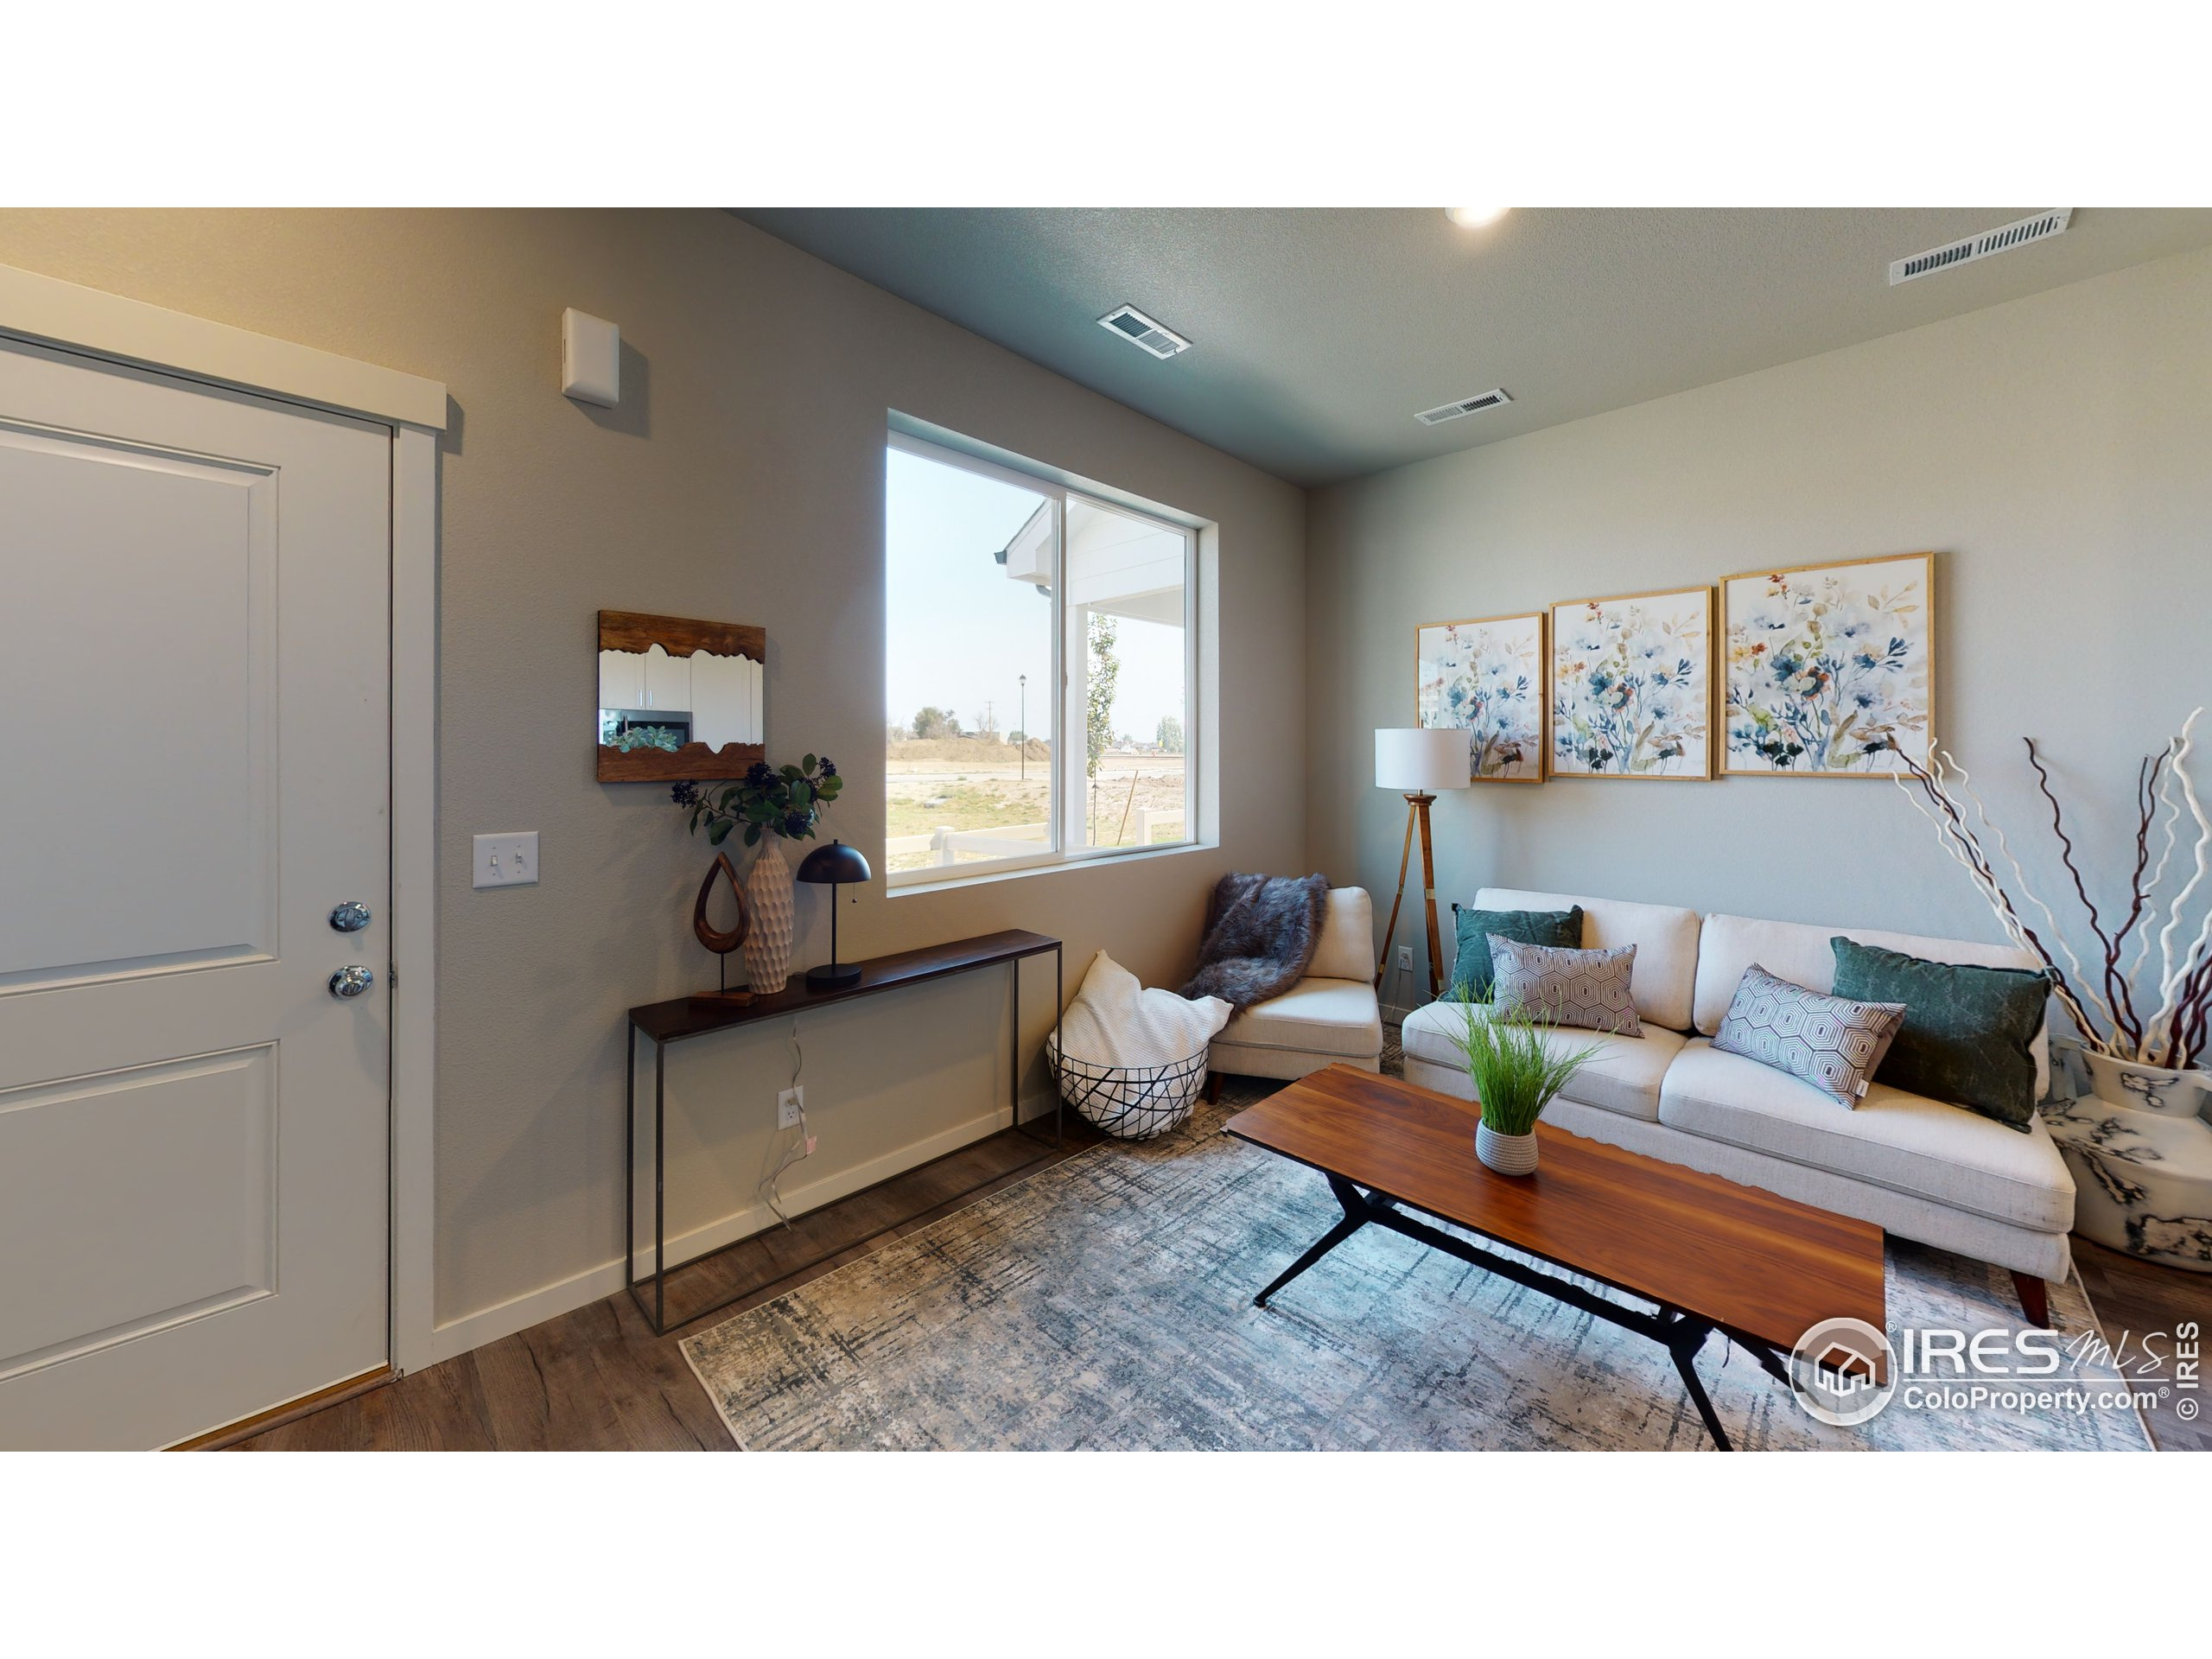 Stock photo, may show optional upgrades/Great Room